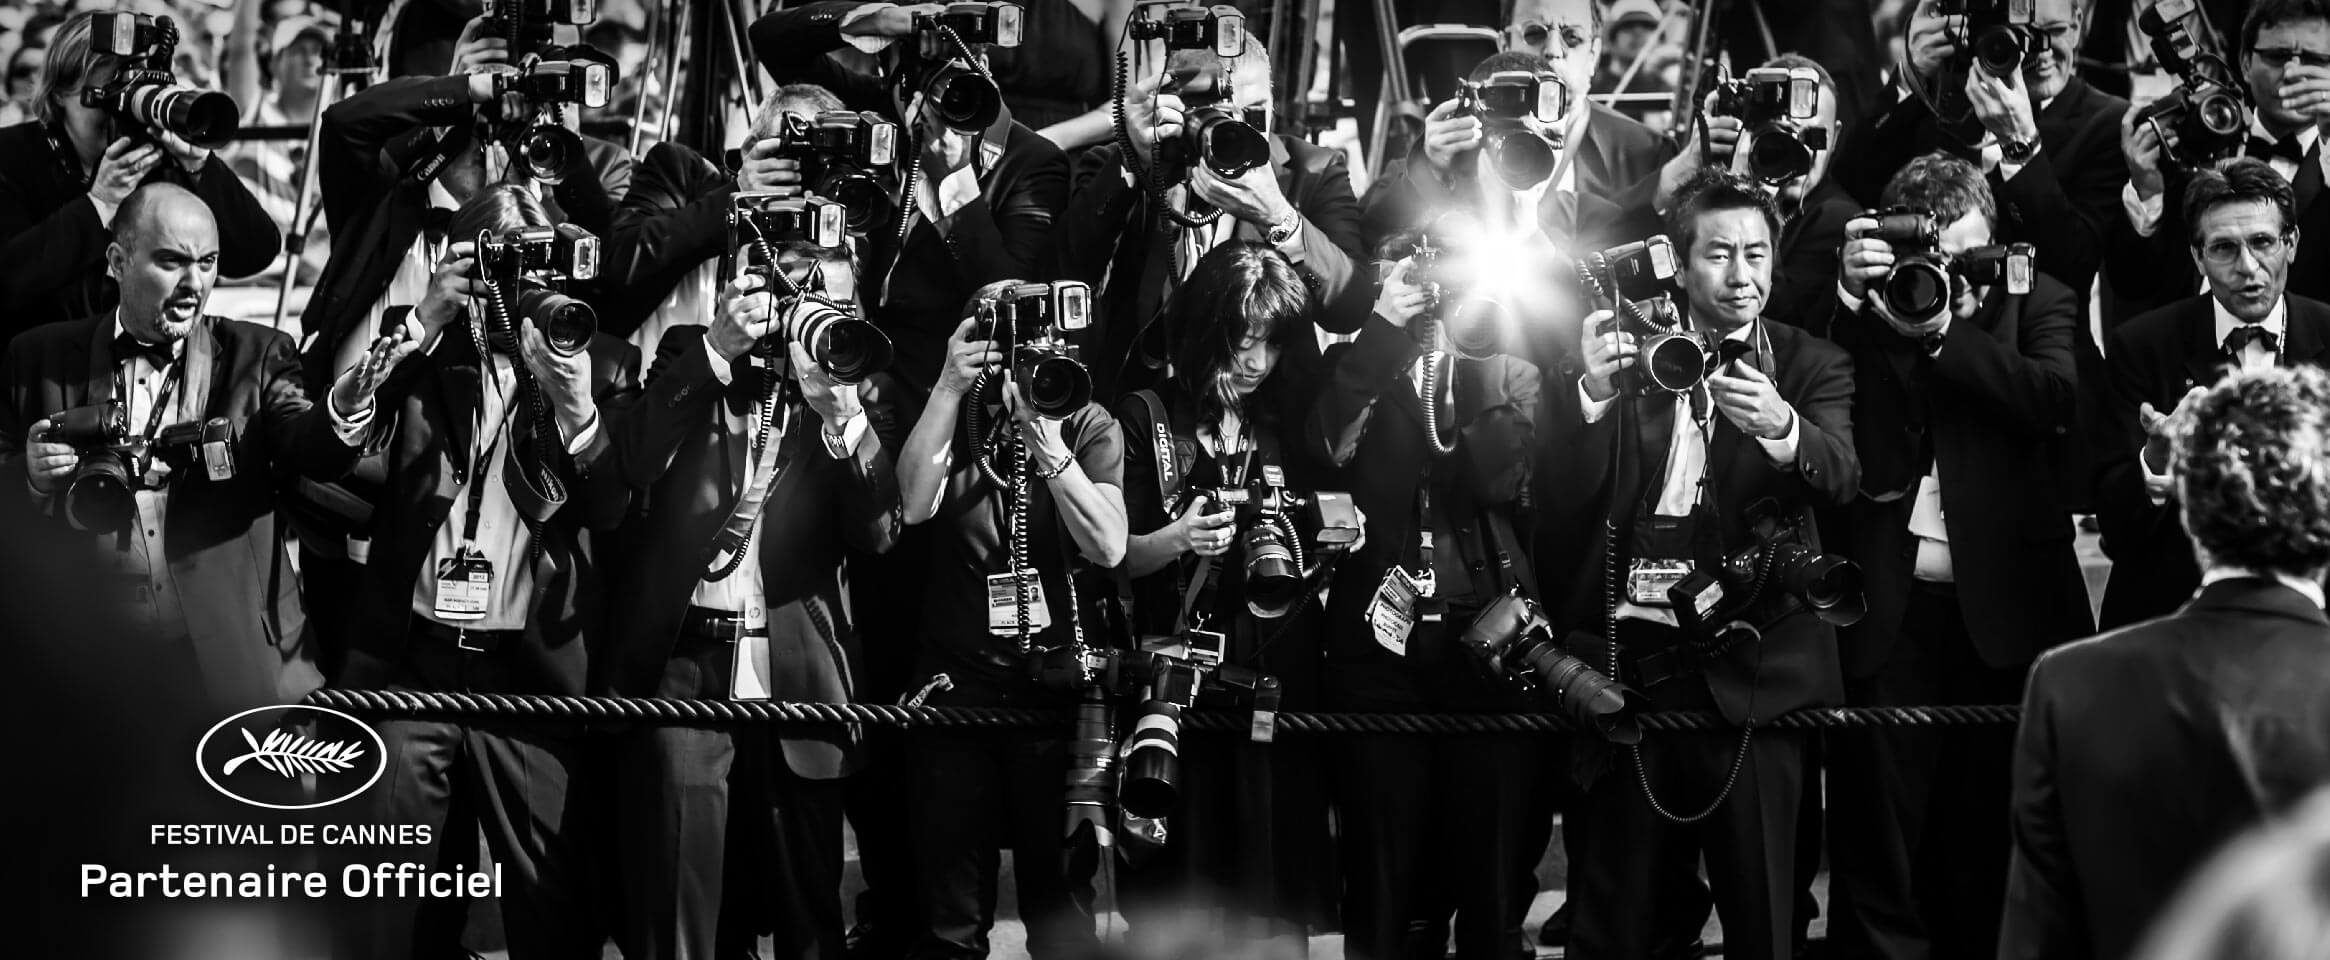 Image of photographers at the Cannes film festival with corresponding festival logo in black and white